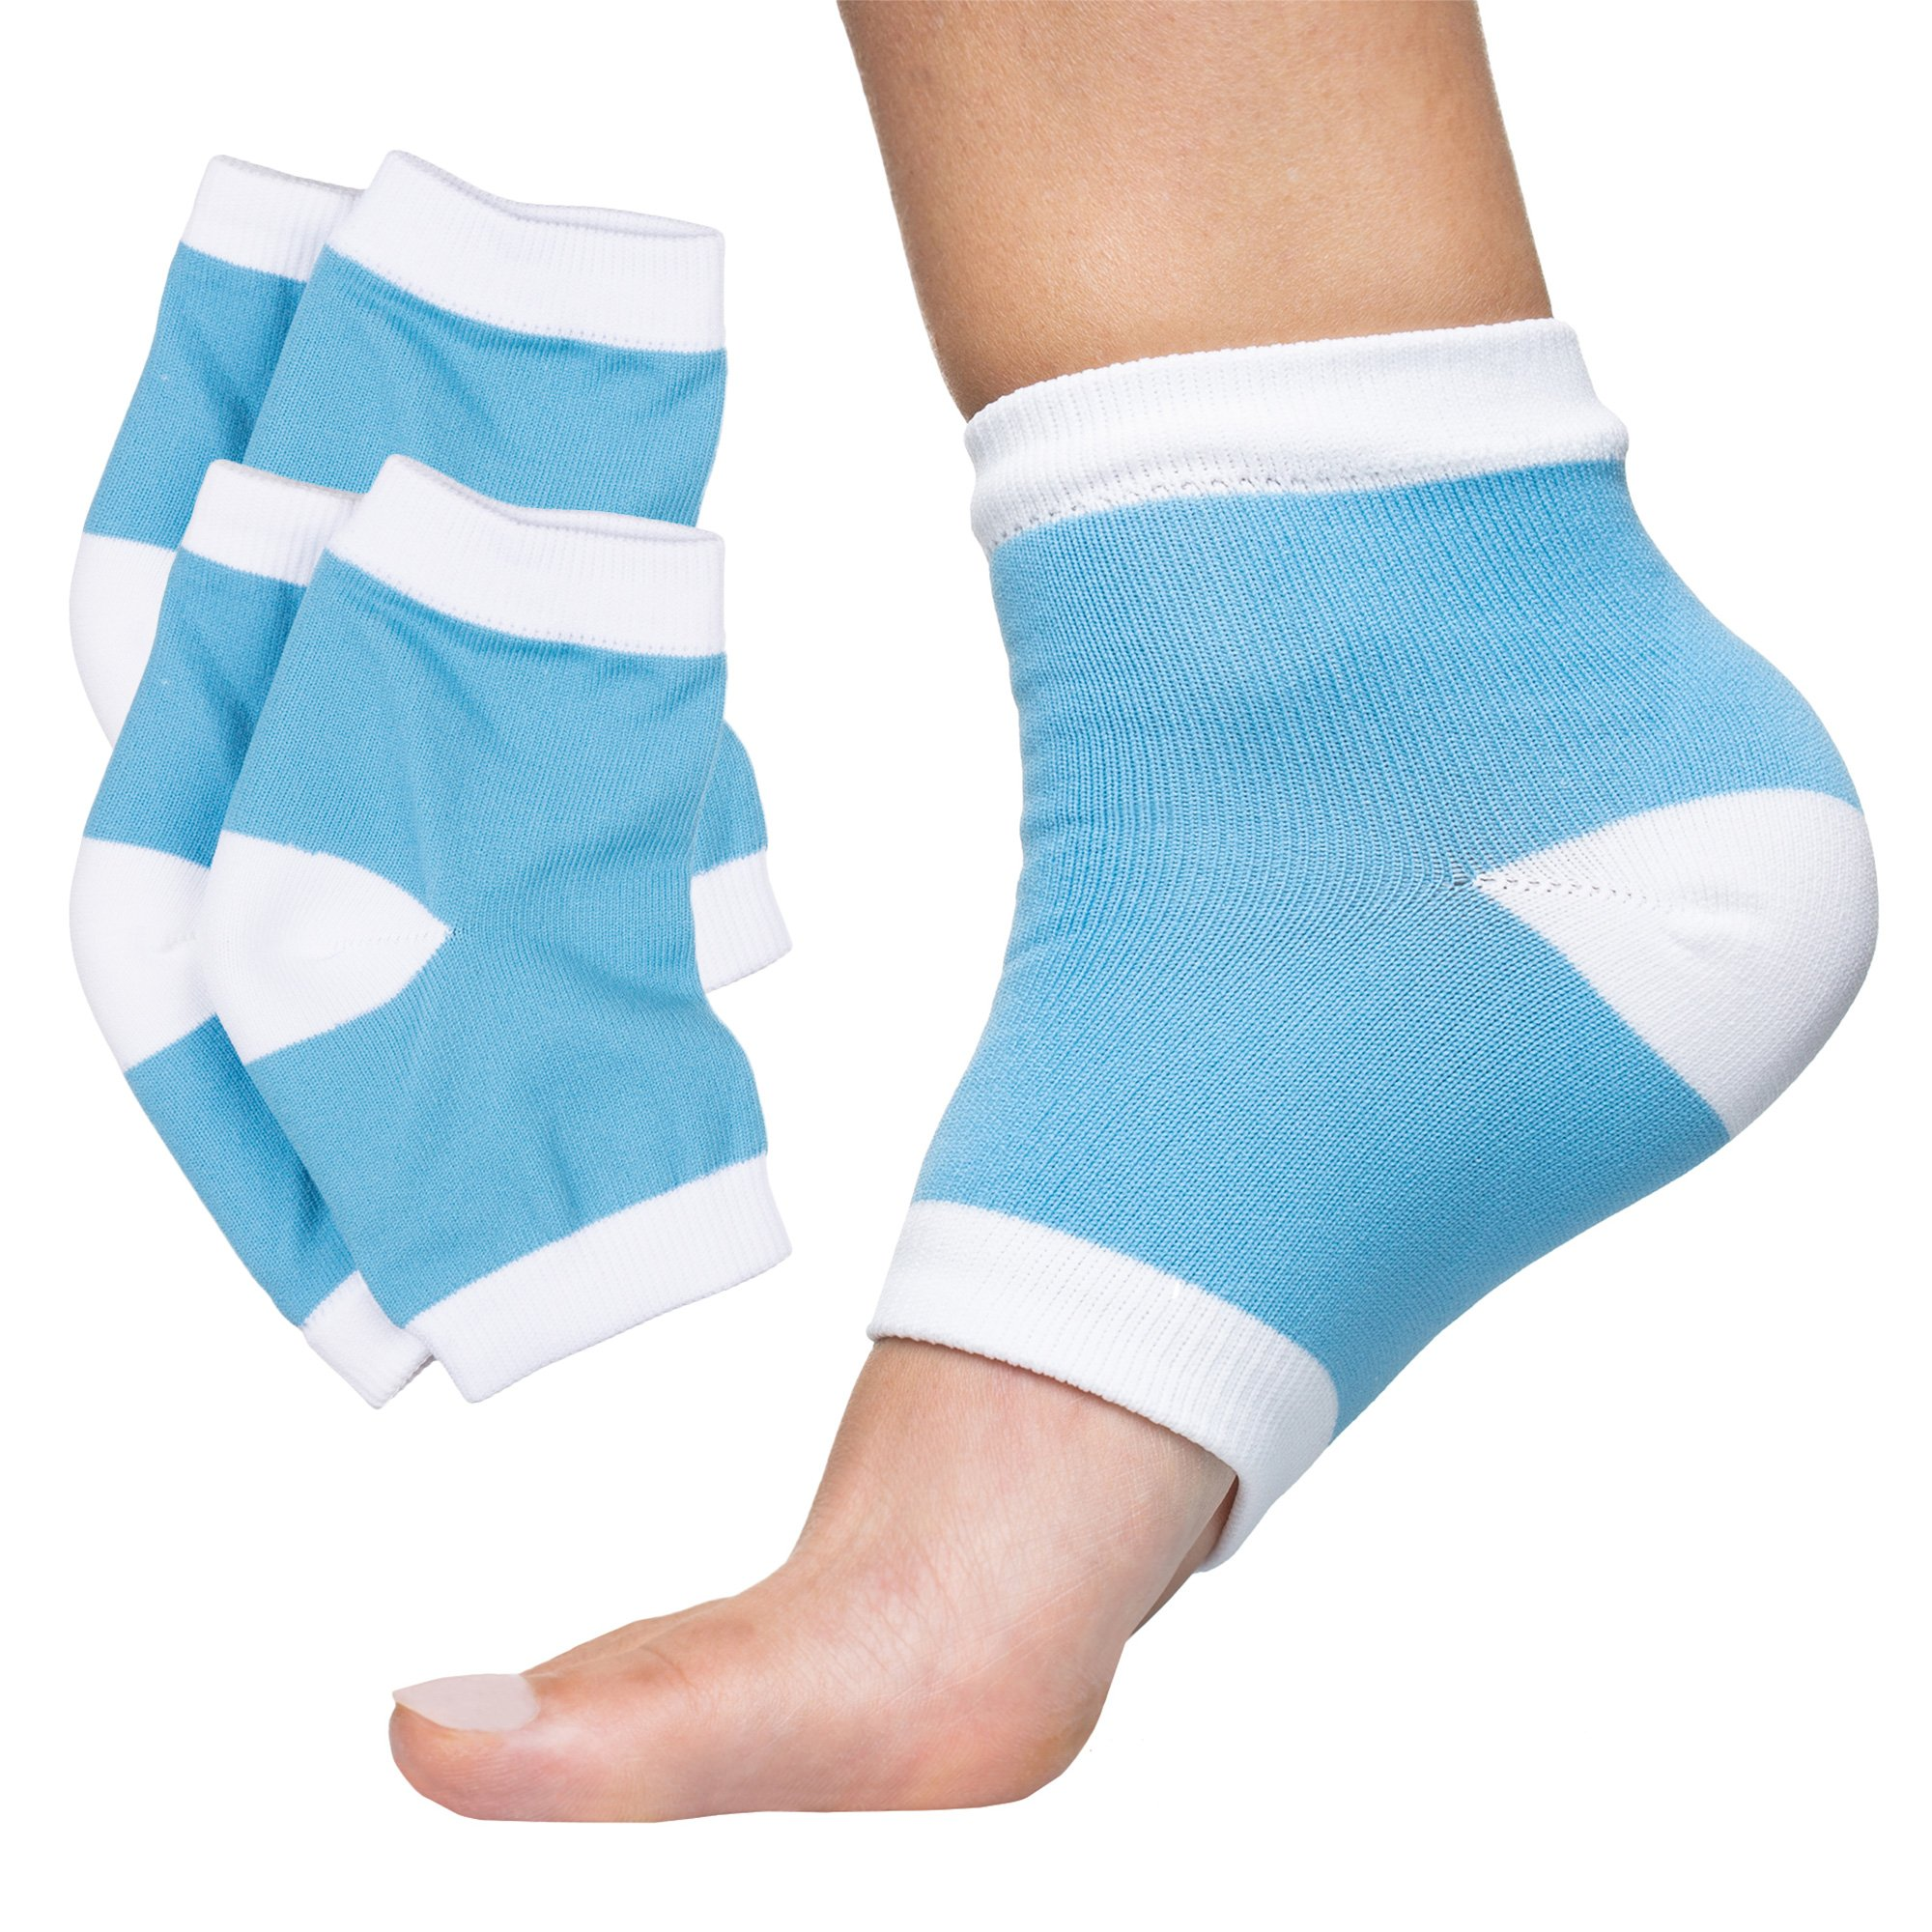 ZenToes Moisturizing Heel Socks 2 Pairs Gel Lined Toeless Spa Socks to Heal and Treat Dry, Cracked Heels While You Sleep (Cotton, Blue) by ZenToes